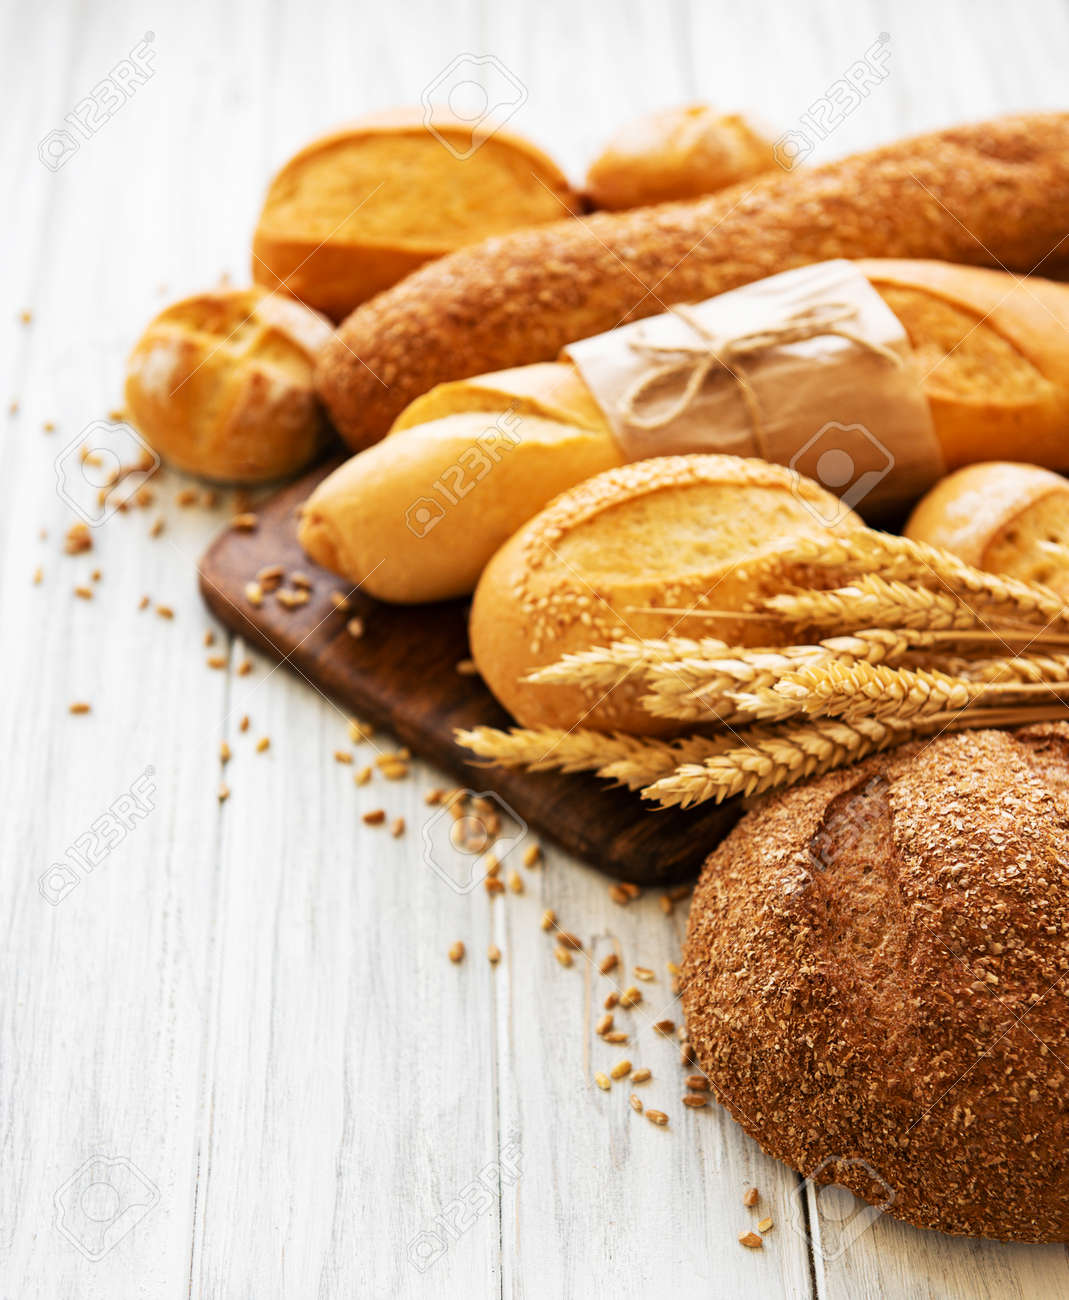 assortment of baked bread on white wooden background - 134599635